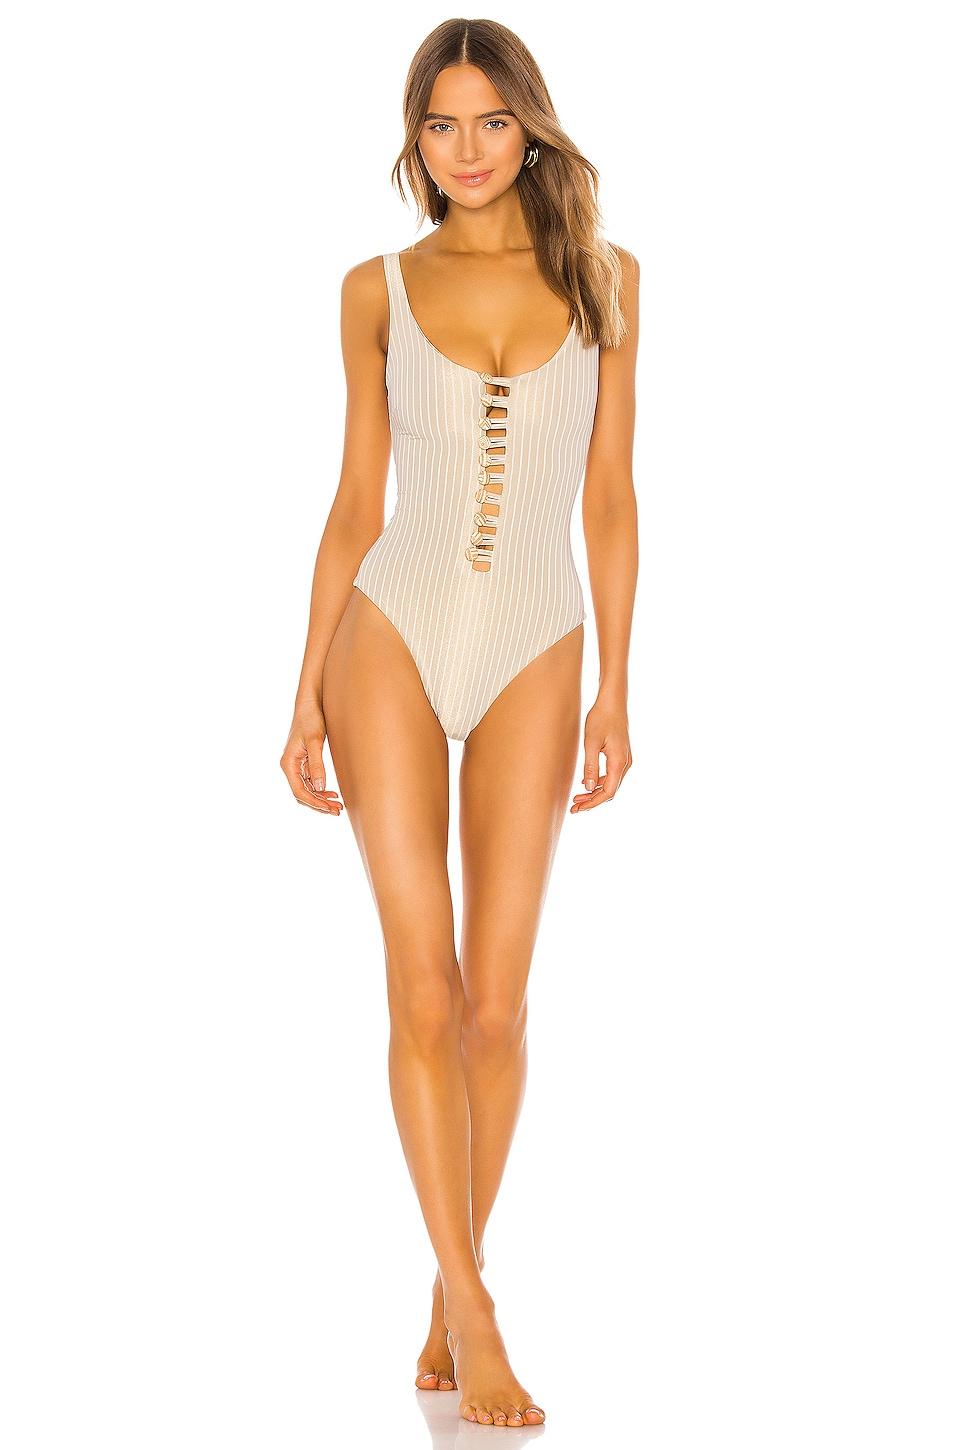 Normaillot Nocturne 20 One Piece in Cream & Gold Stripe